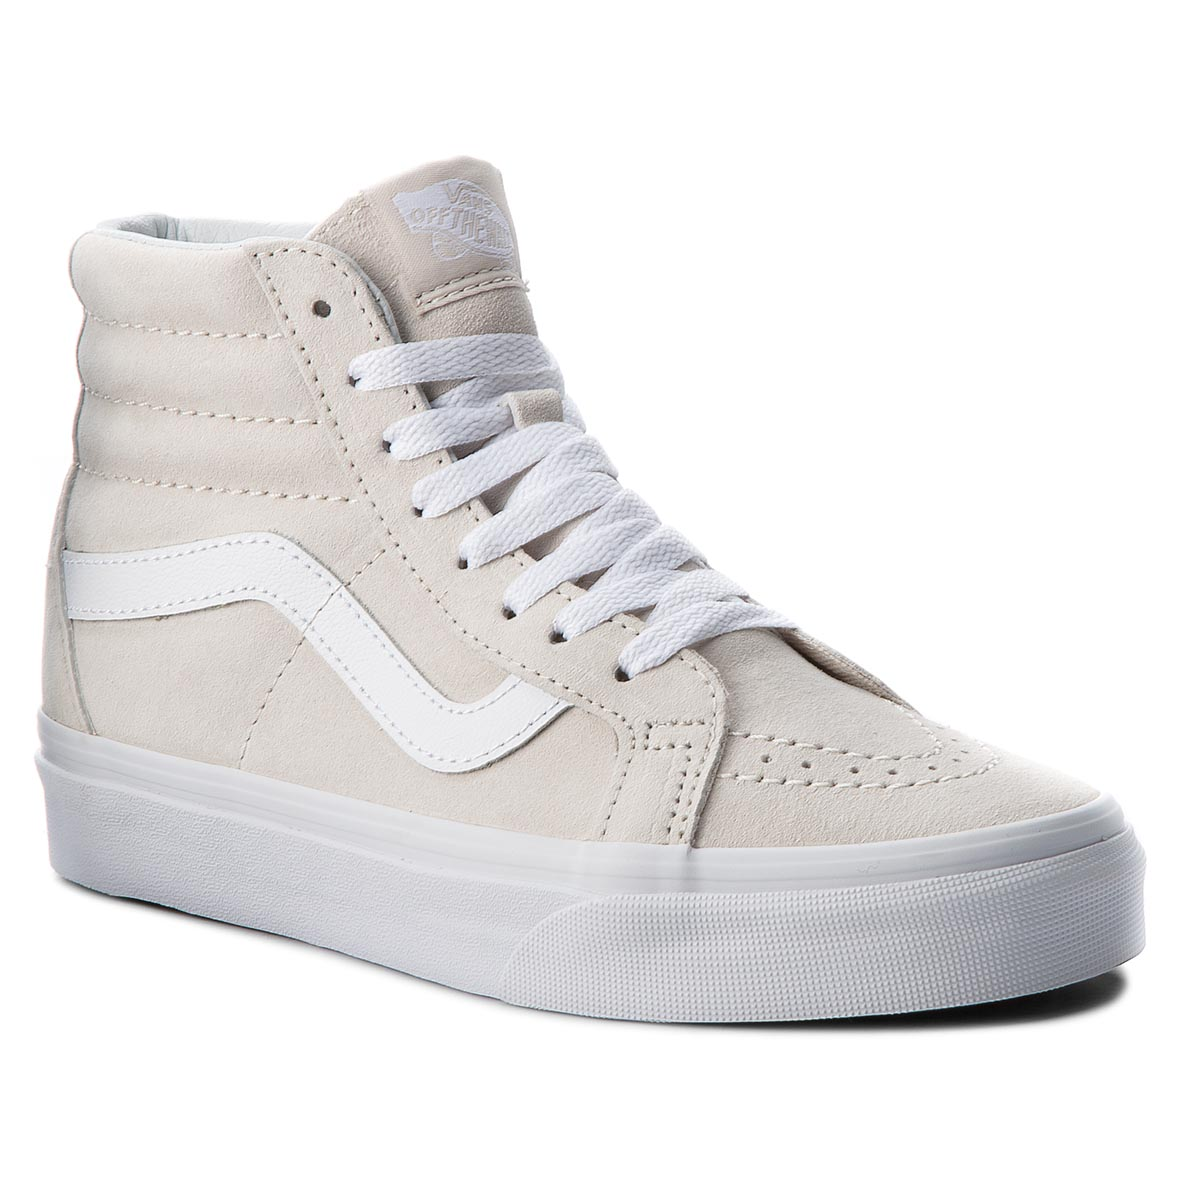 Sneakers VANS - Sk8-Hi Reissue VN0A2XSBU5L (Pig Suede) Moonbeam/True